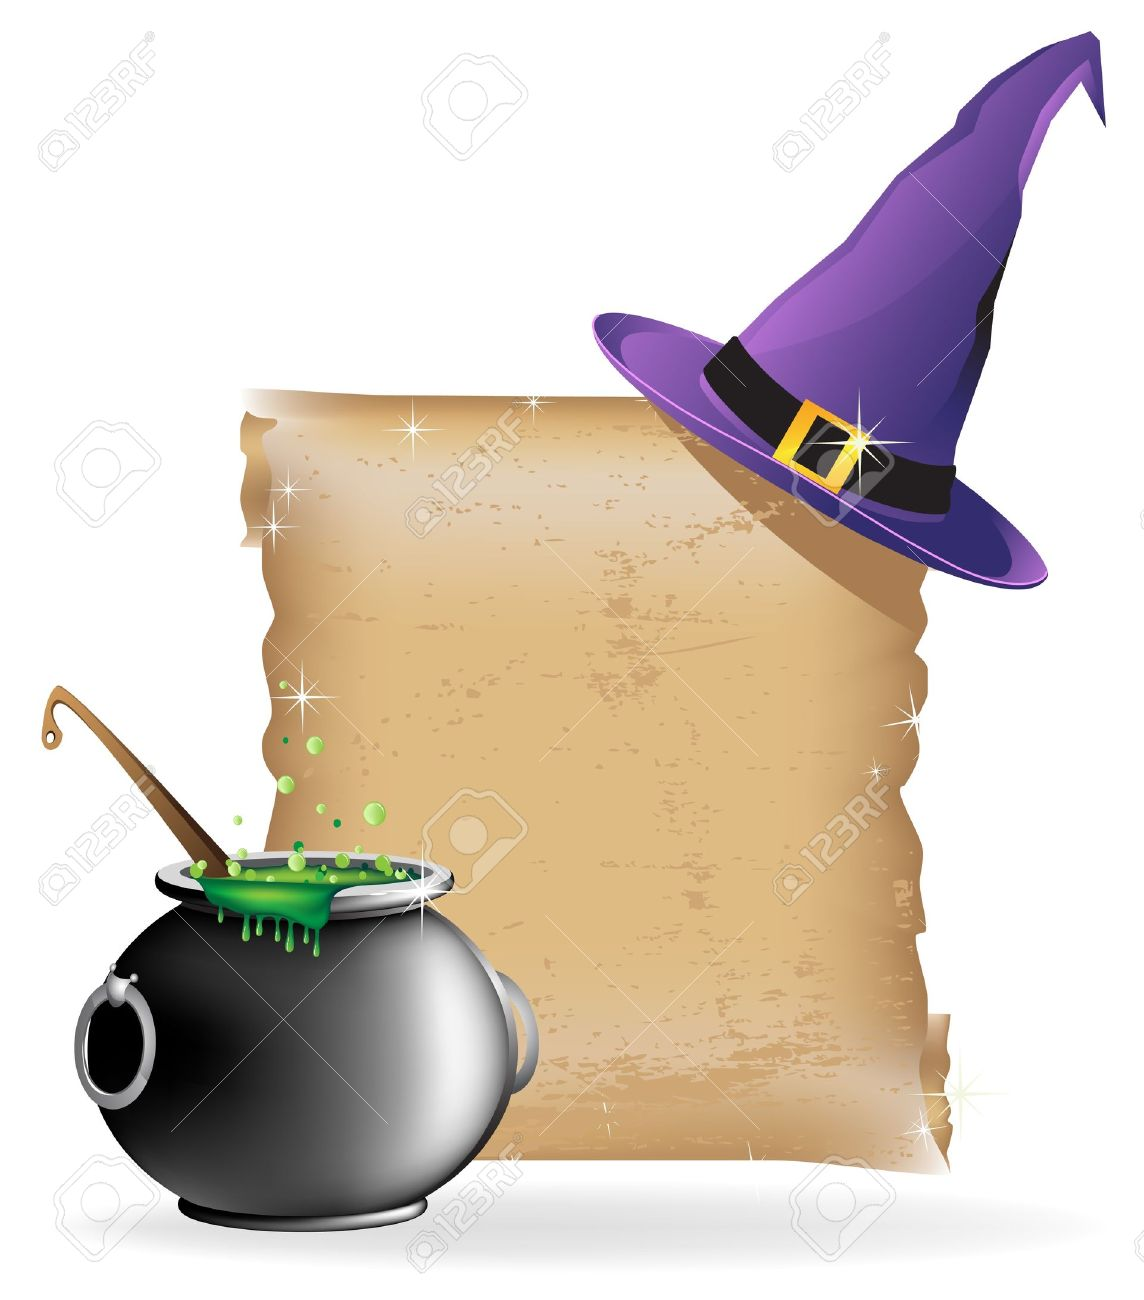 715 Cauldron Boil Stock Vector Illustration And Royalty Free ...